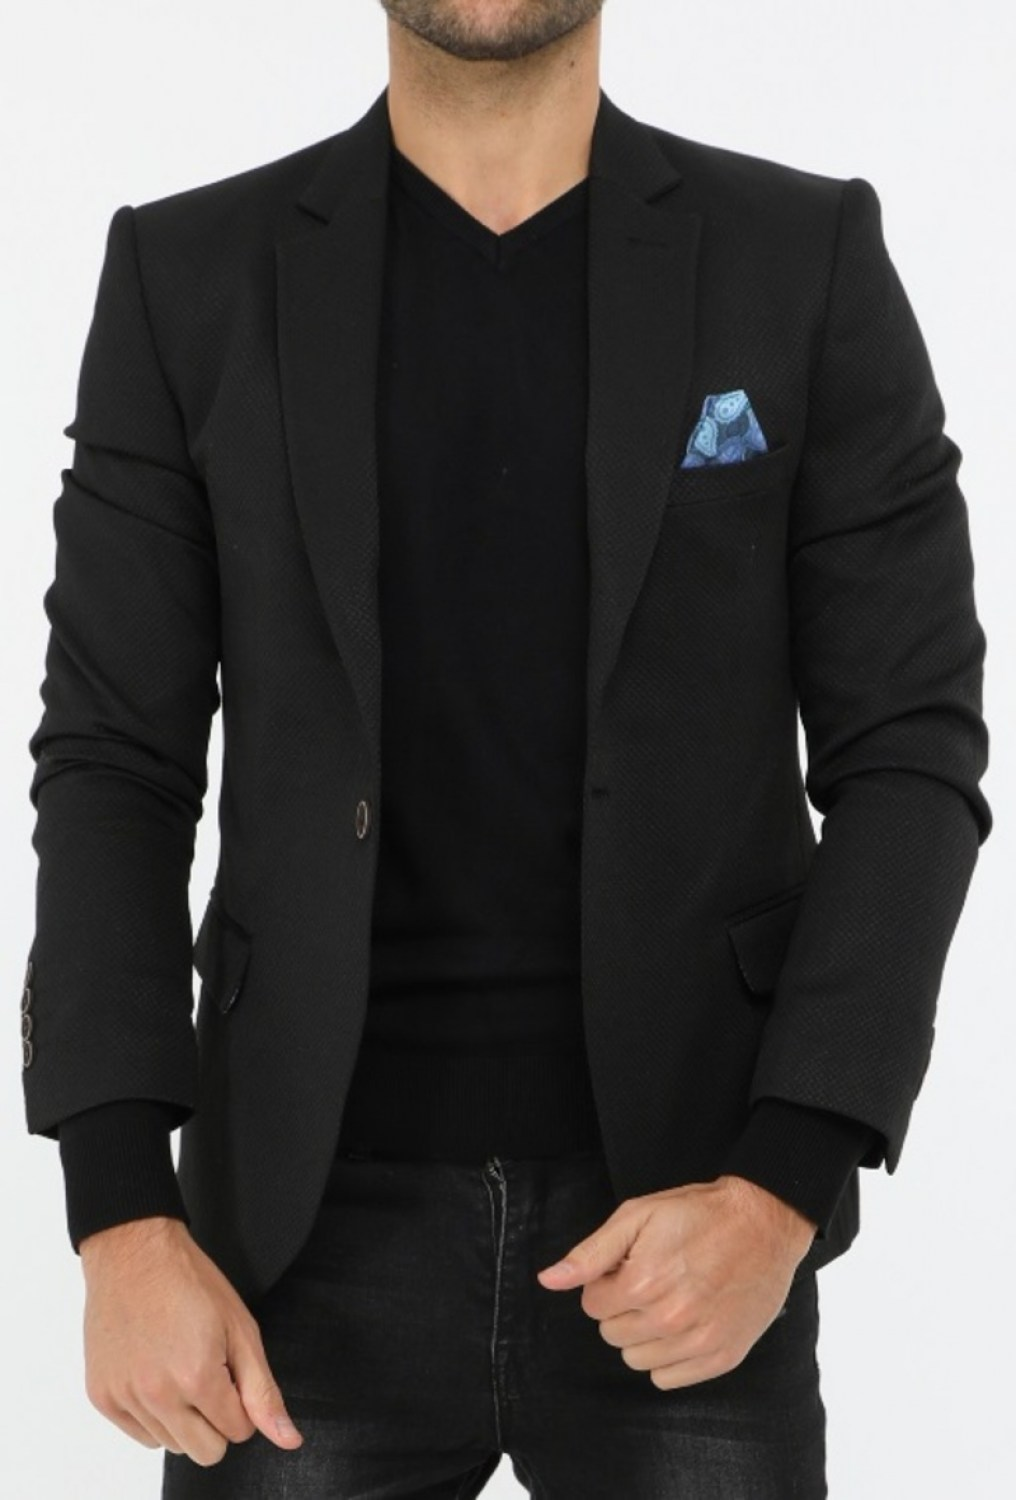 Form fit blazer